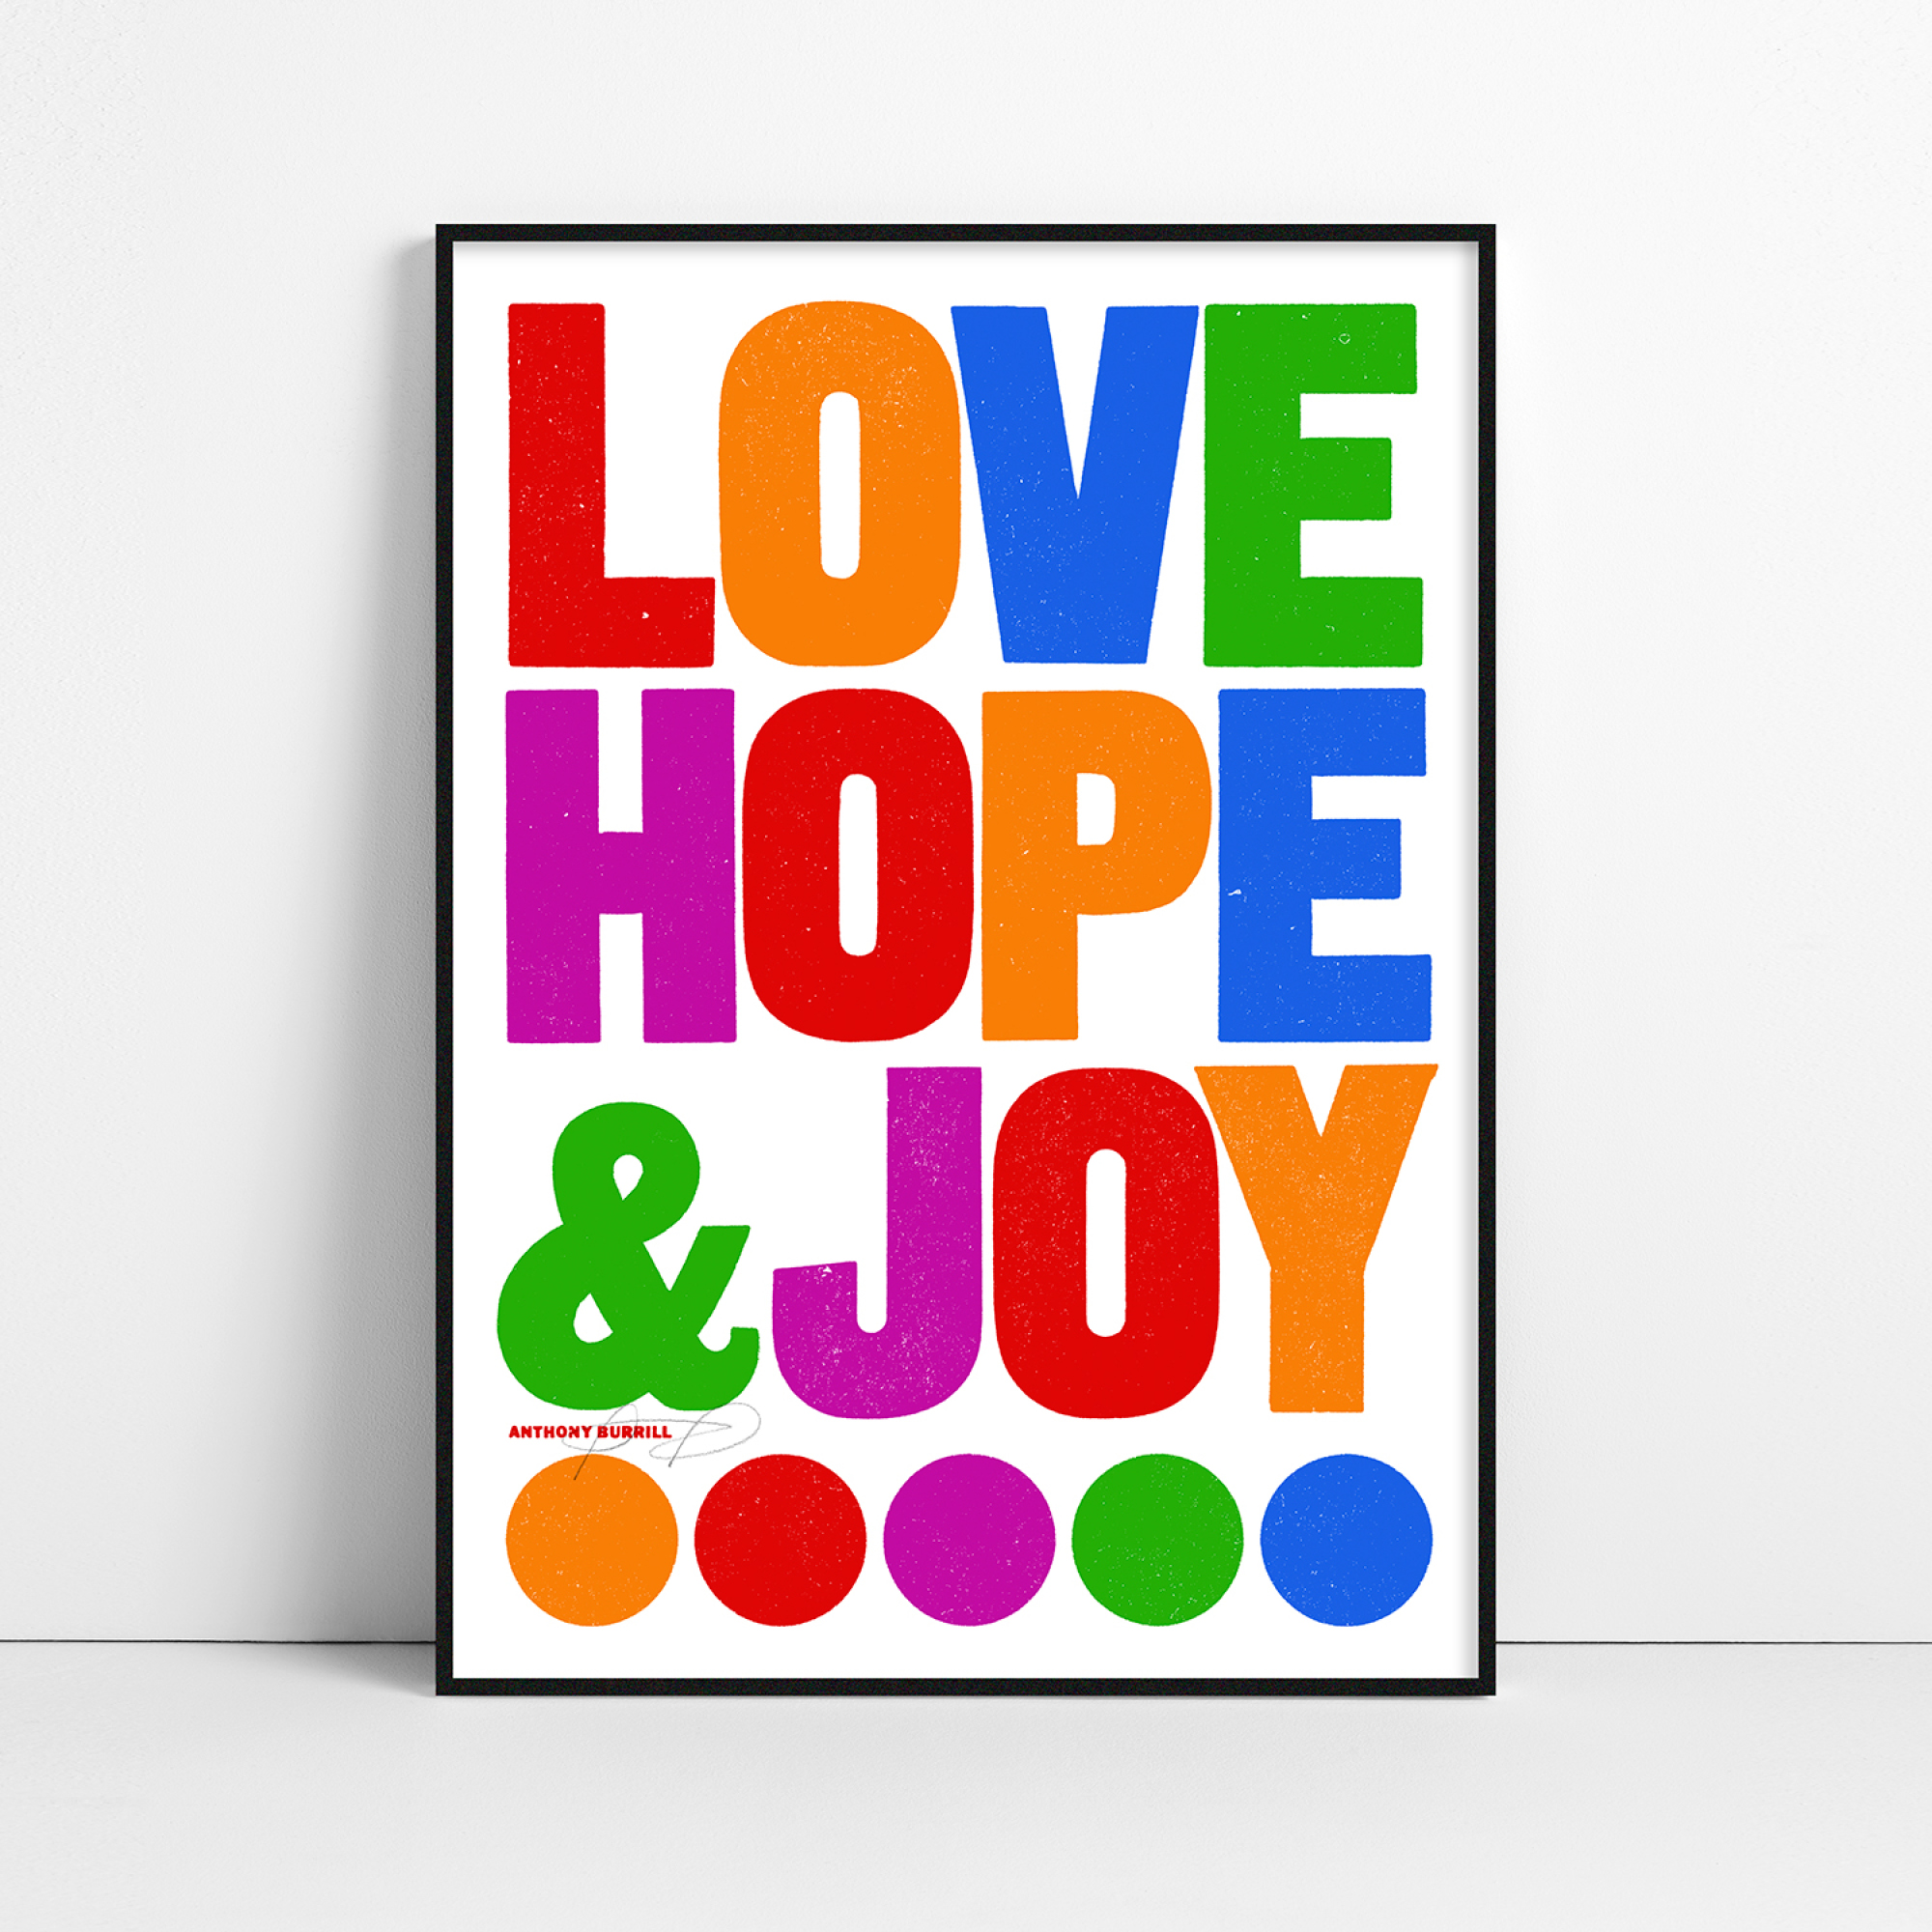 Anhtony Burrill's Love, Hope & Joy is available as a limited-edition print with proceeds going to NHS Charities Together